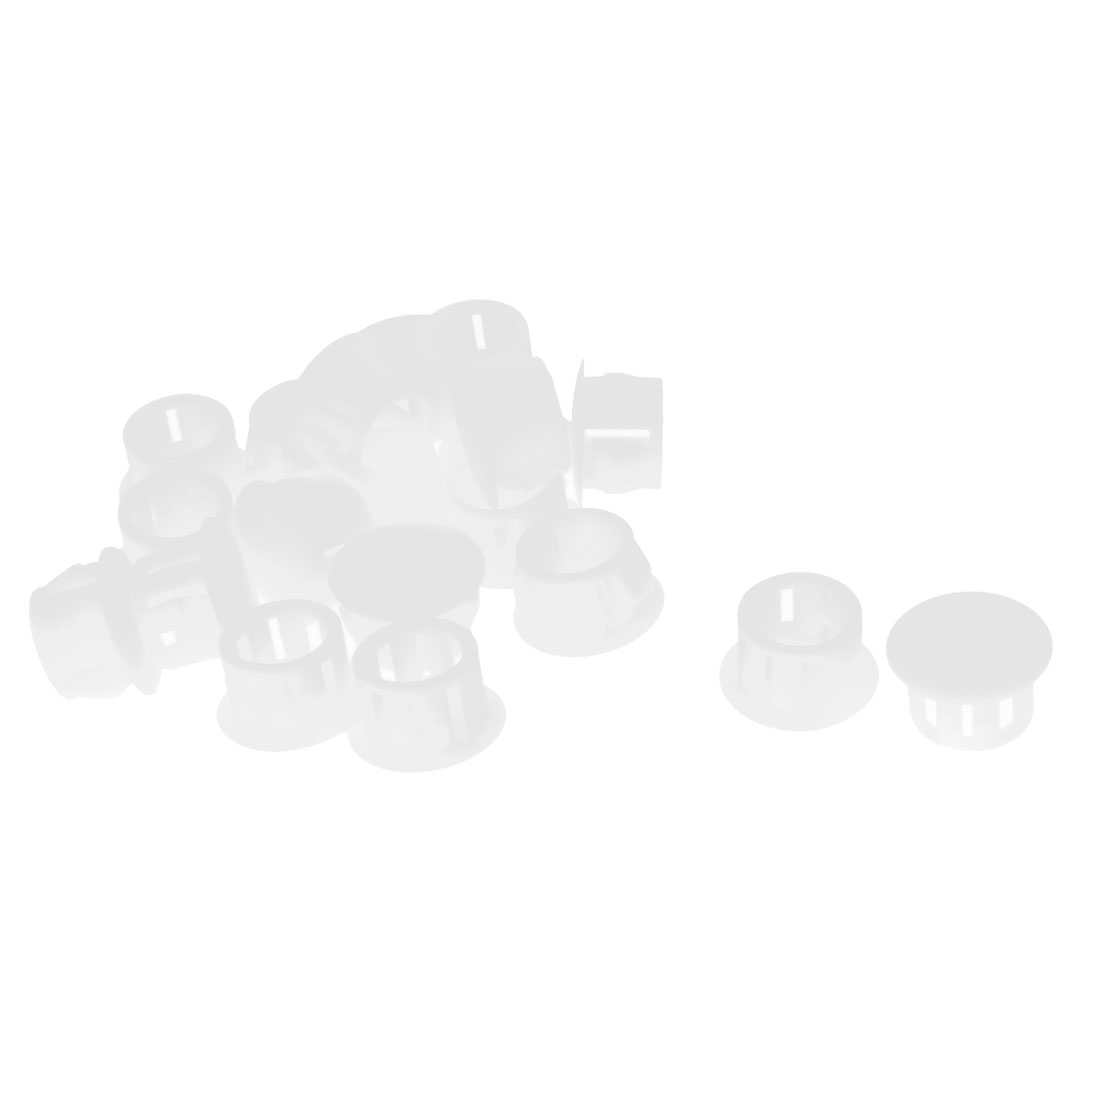 20Pcs SKT-13 Insulated White Plastic Snap in Mounting Locking Hole Plug Harness Fastener Cover 12.7mm Dia